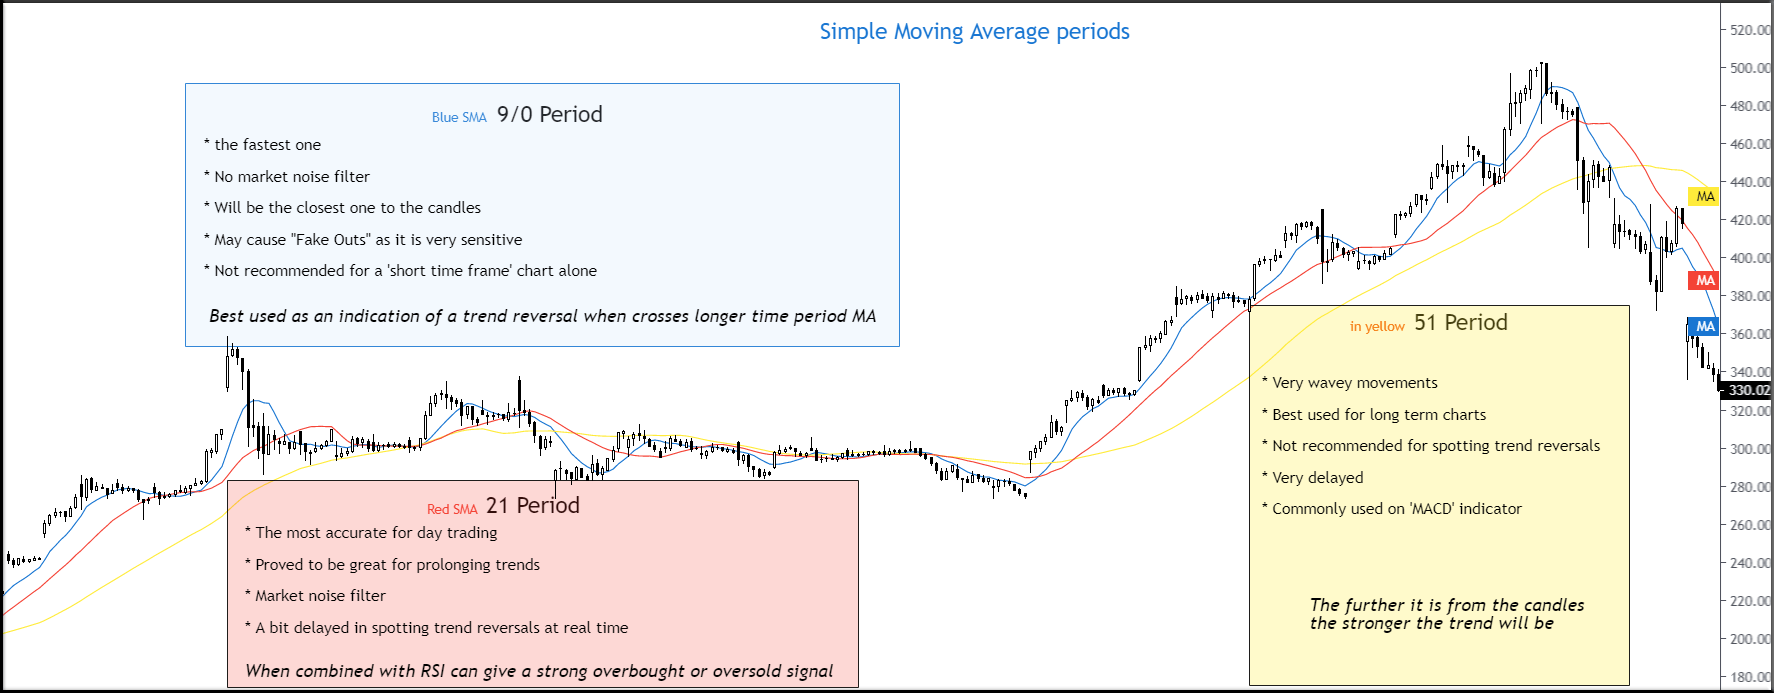 simple moving average periods